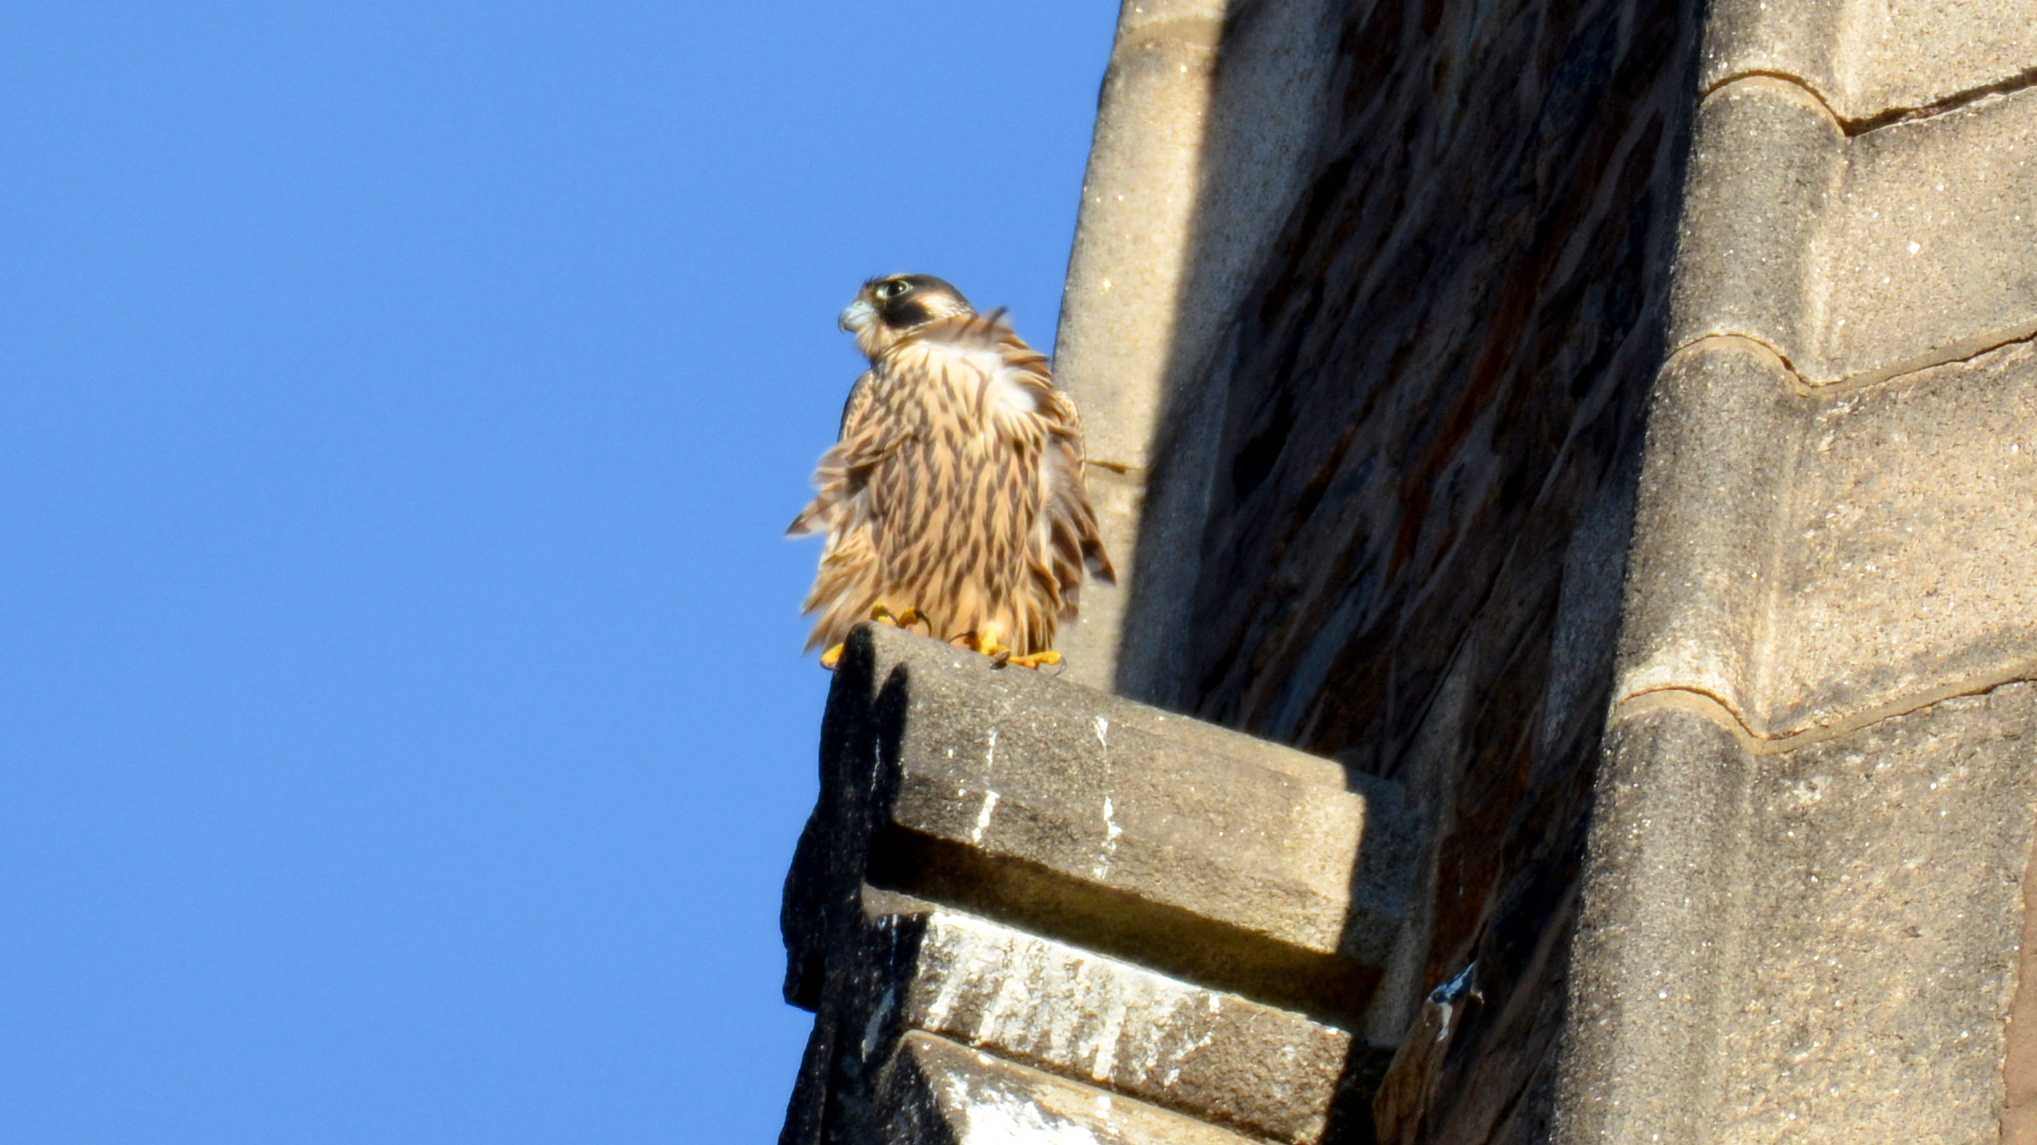 Perching on the steeple